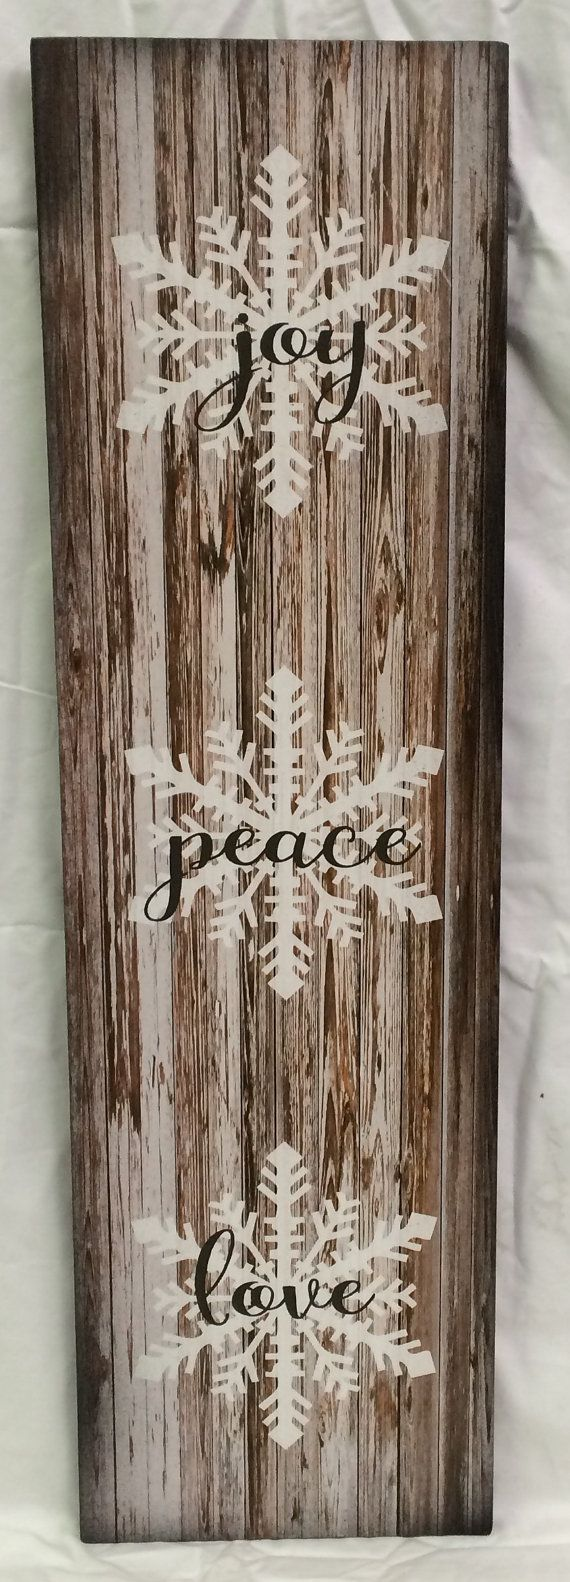 Joy Peace Love Wood Sign or Canvas Wall Hanging - Christmas, Farmhouse,Winter Sign,